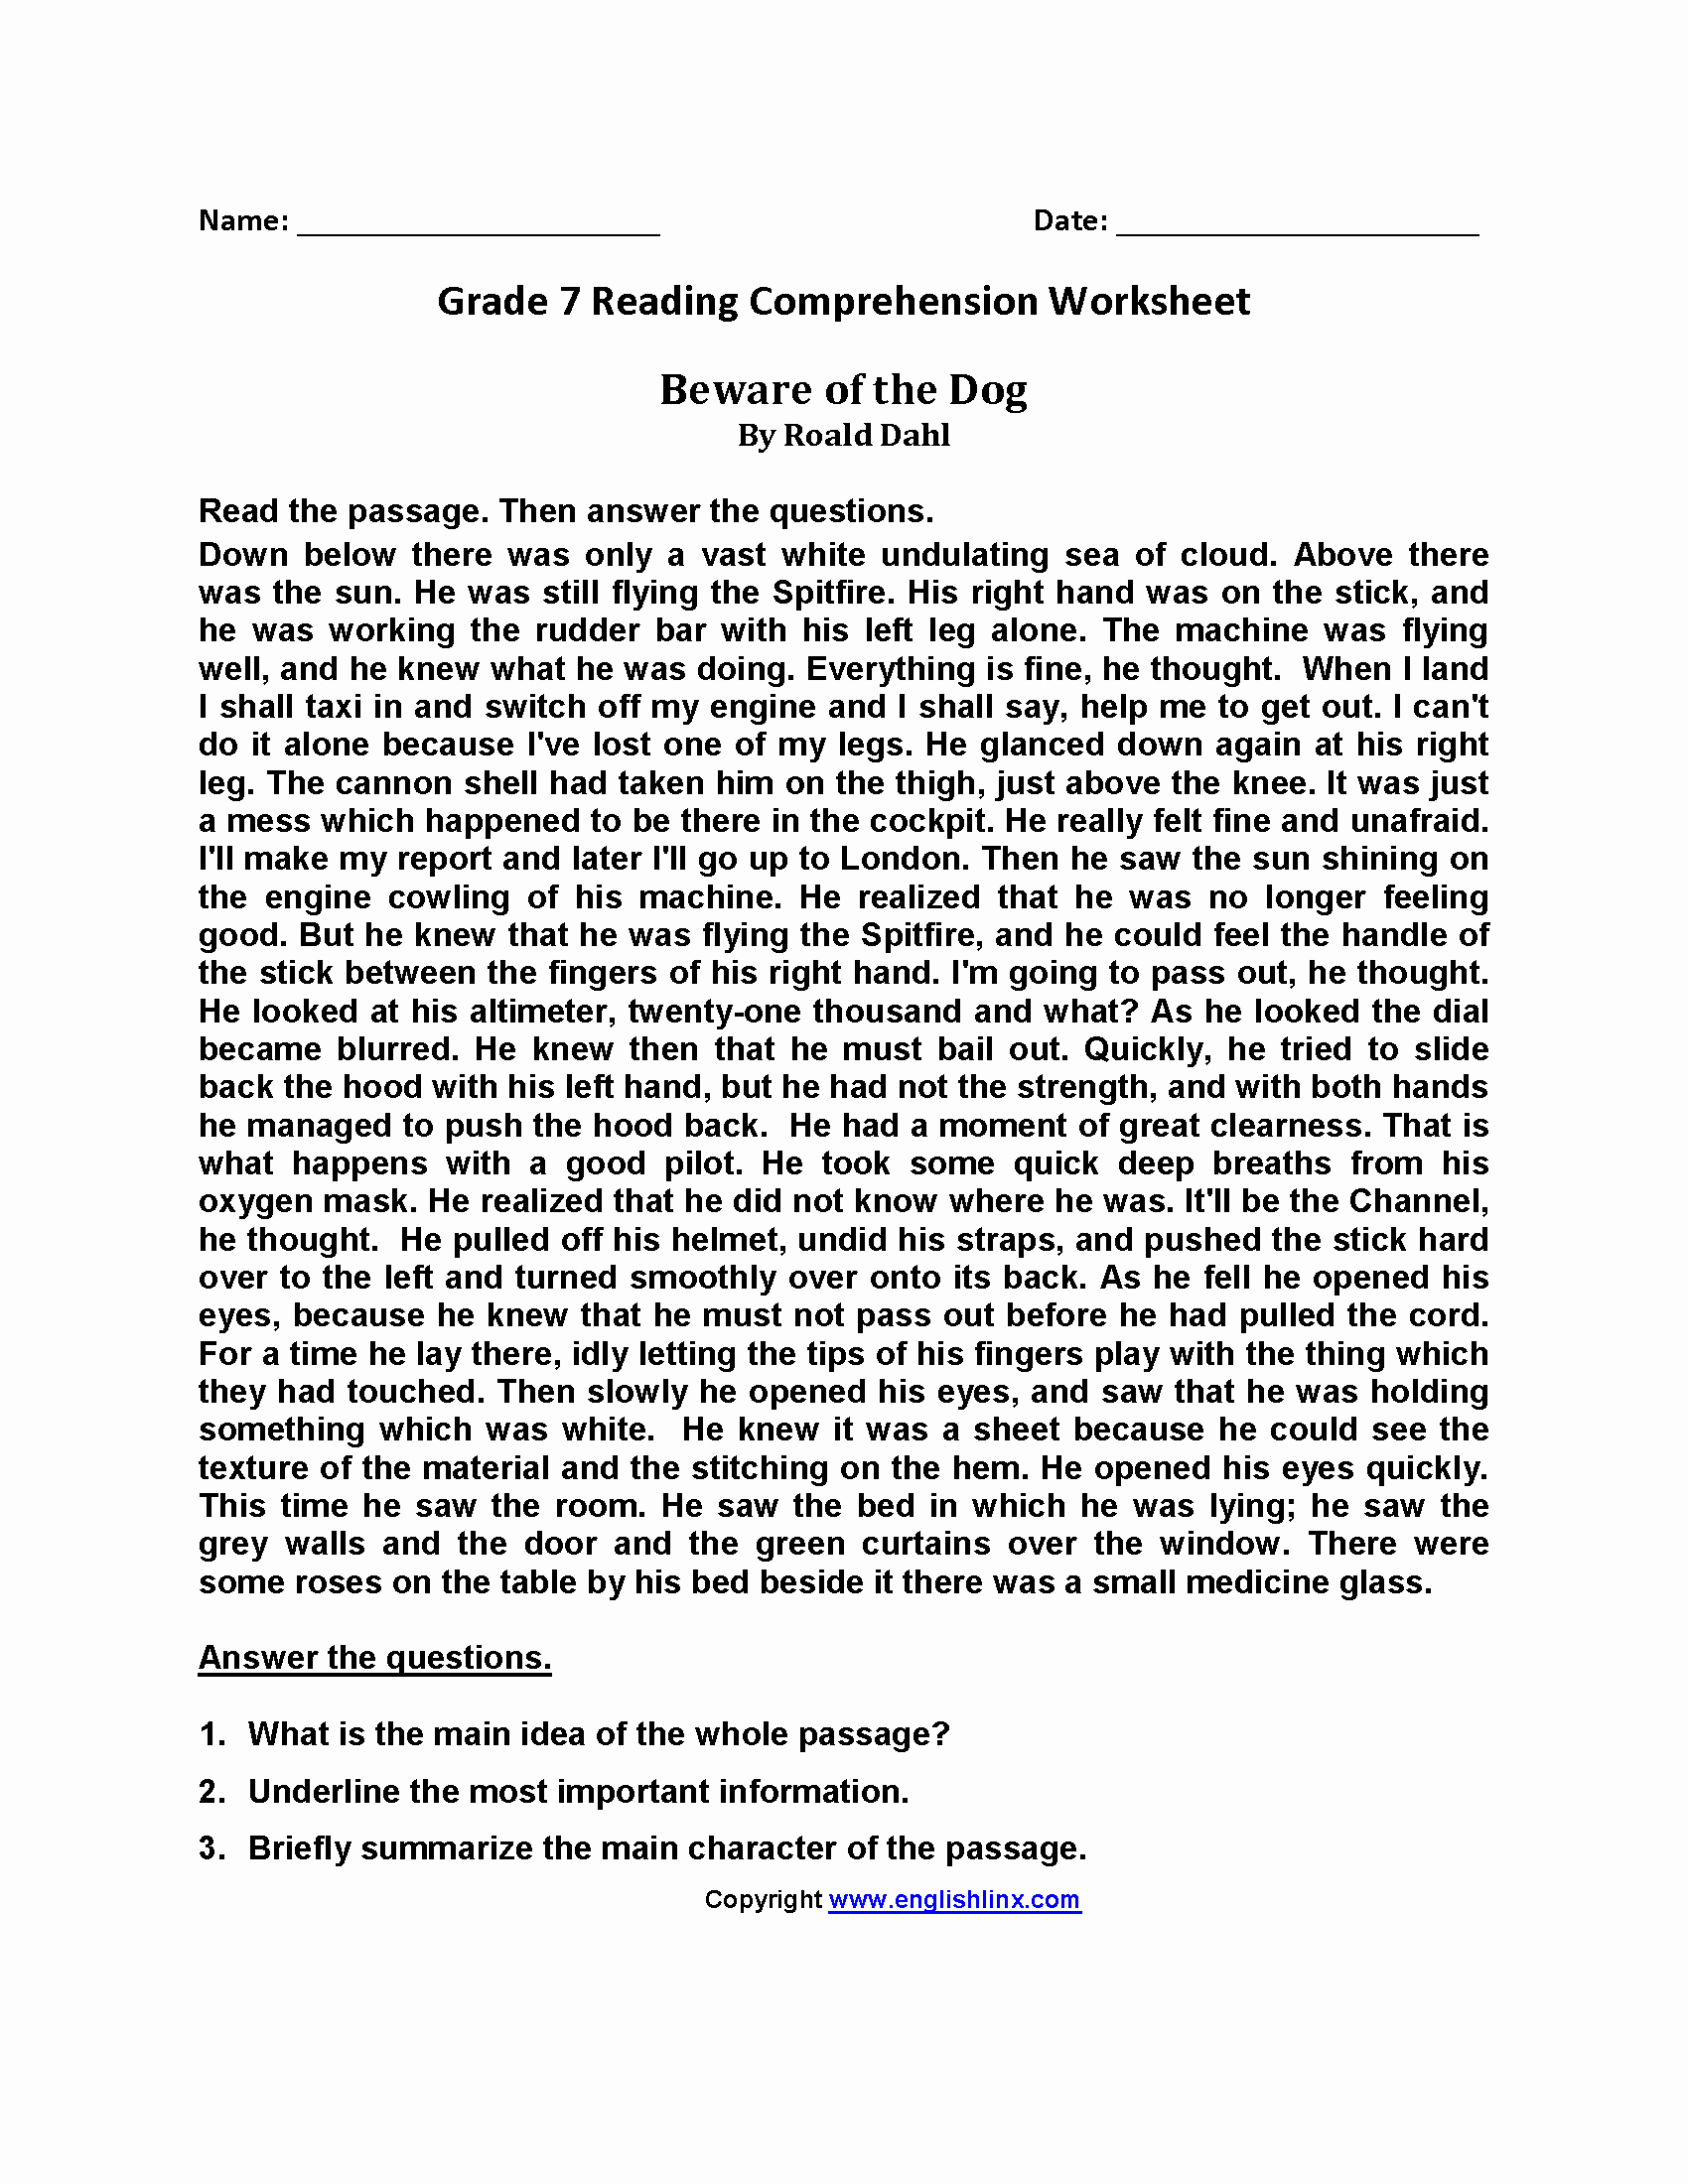 Free 7th Grade Reading Worksheets Awesome Worksheet Free Printable 7th Grade Reading Prehension